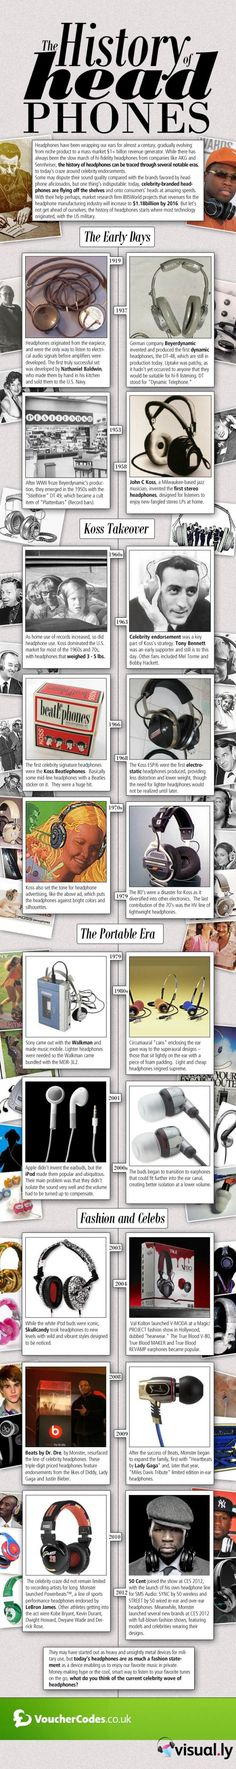 The History of Head Phones